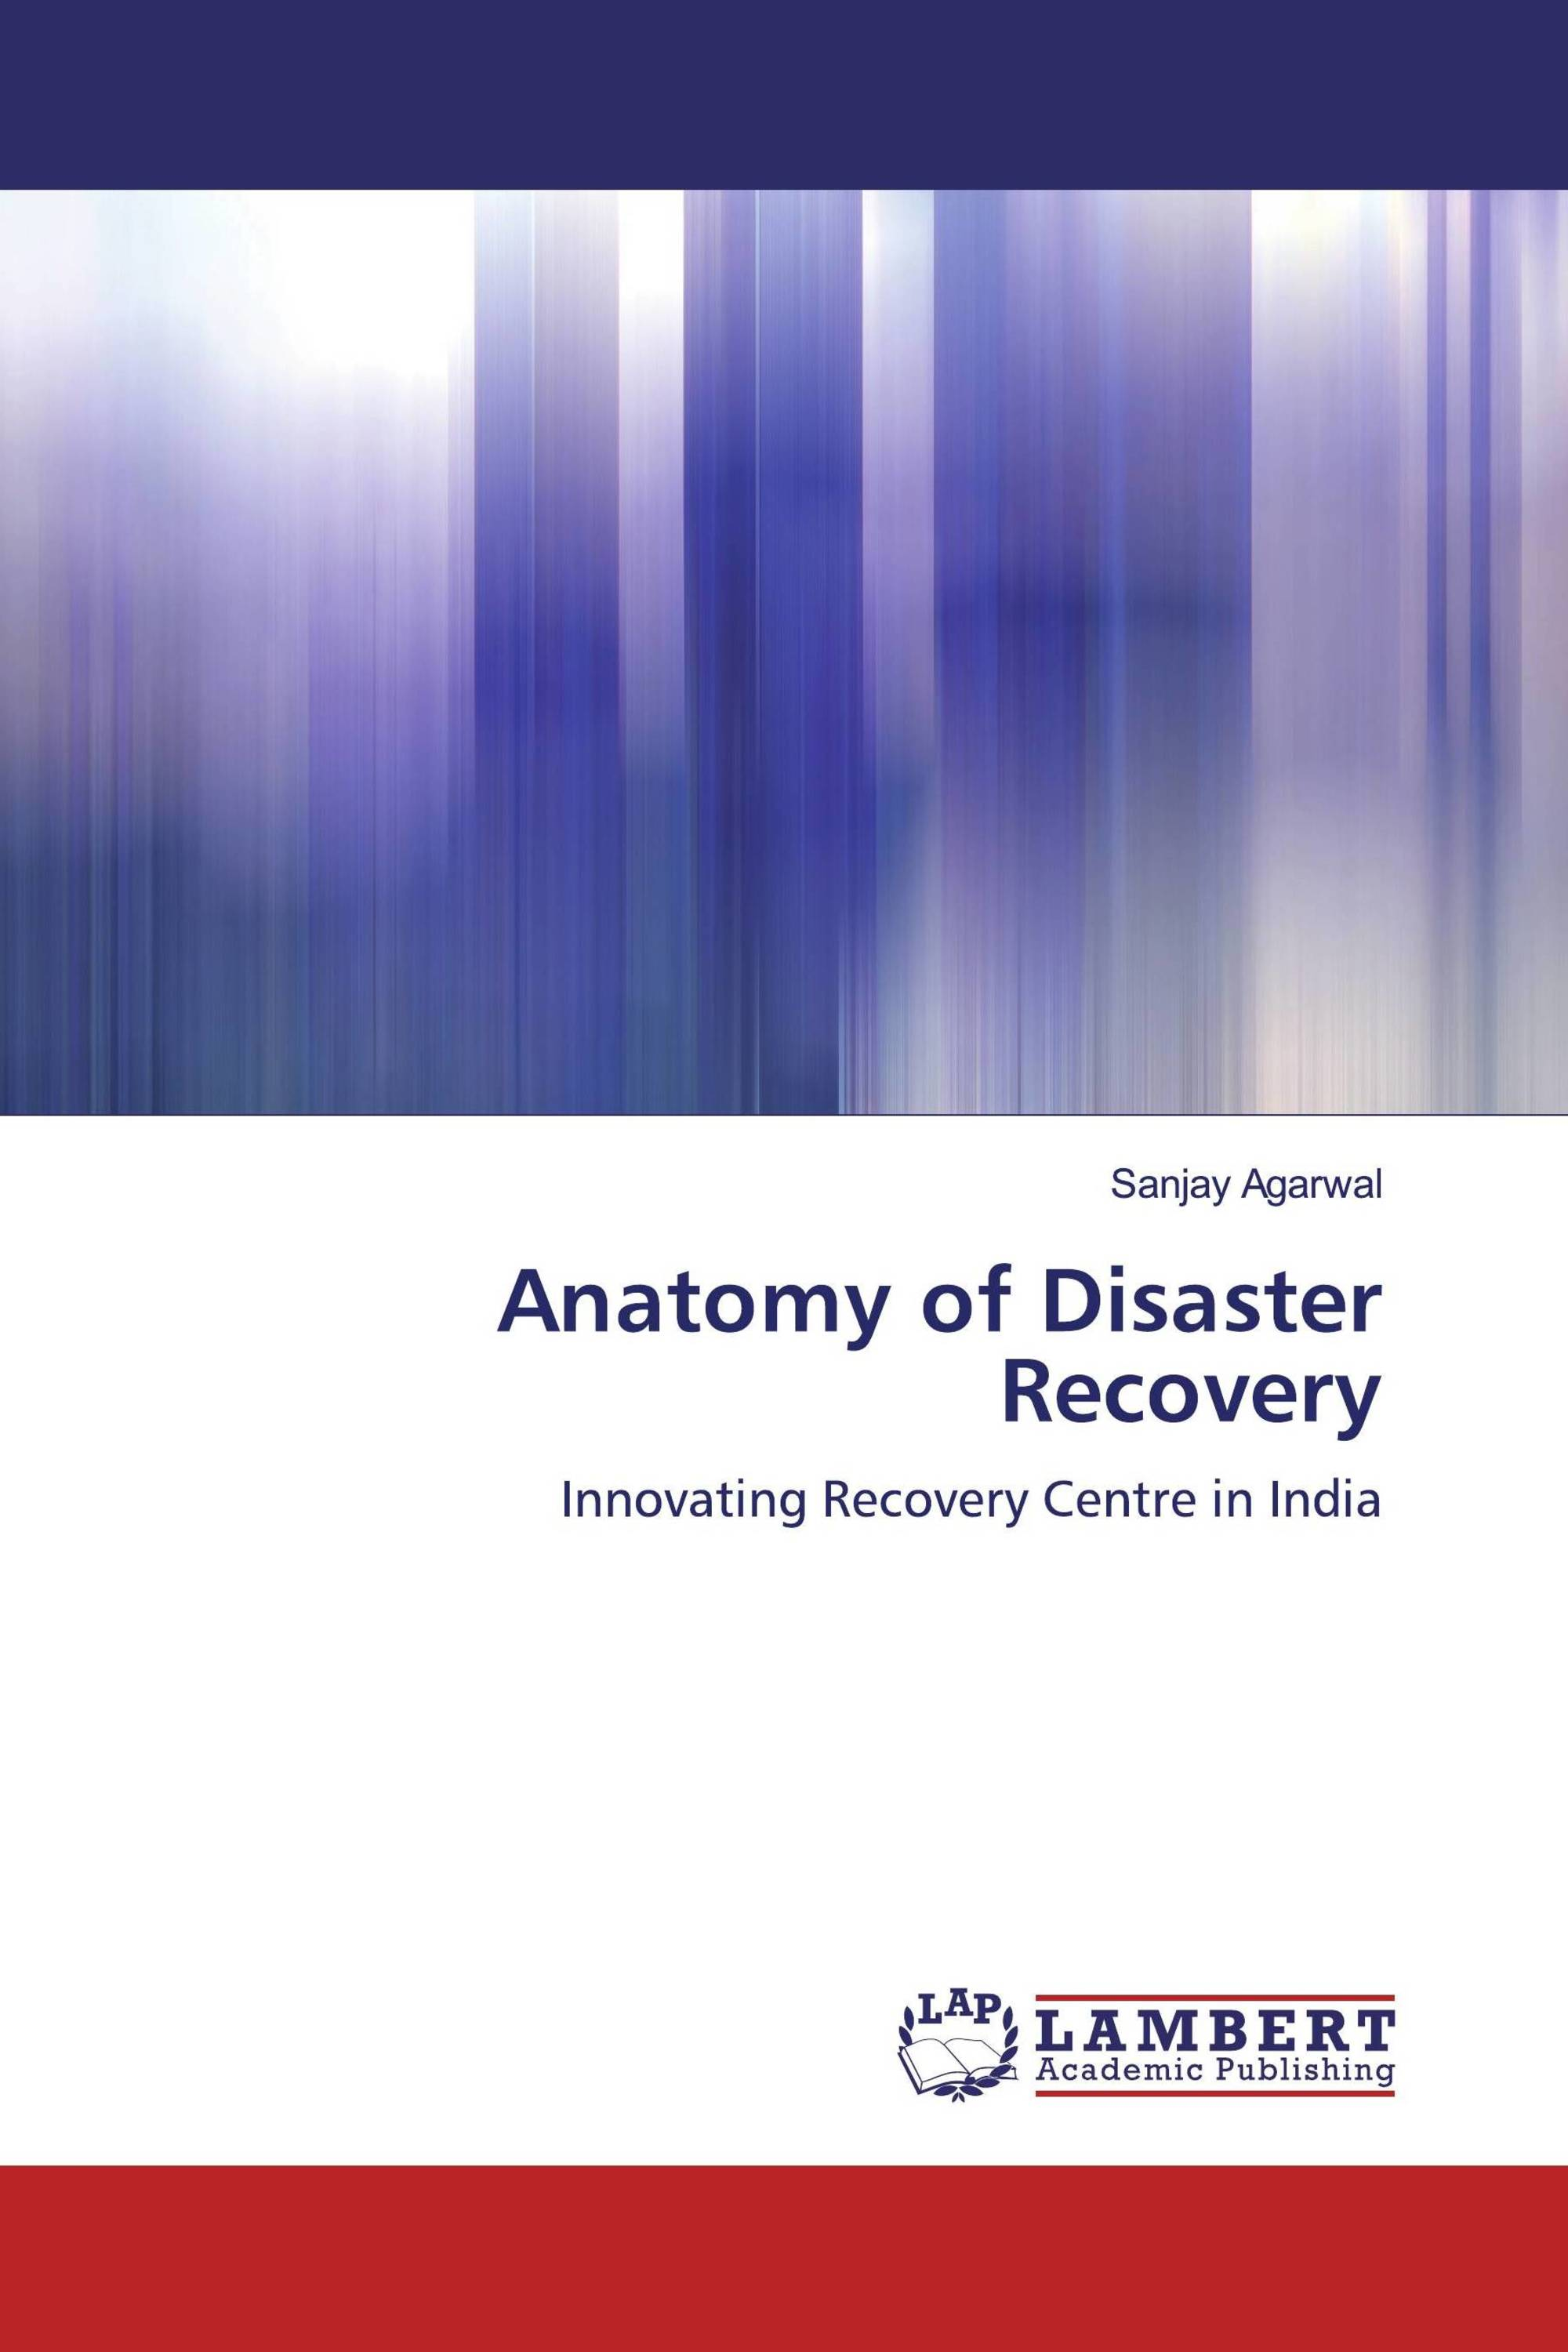 Anatomy of Disaster Recovery